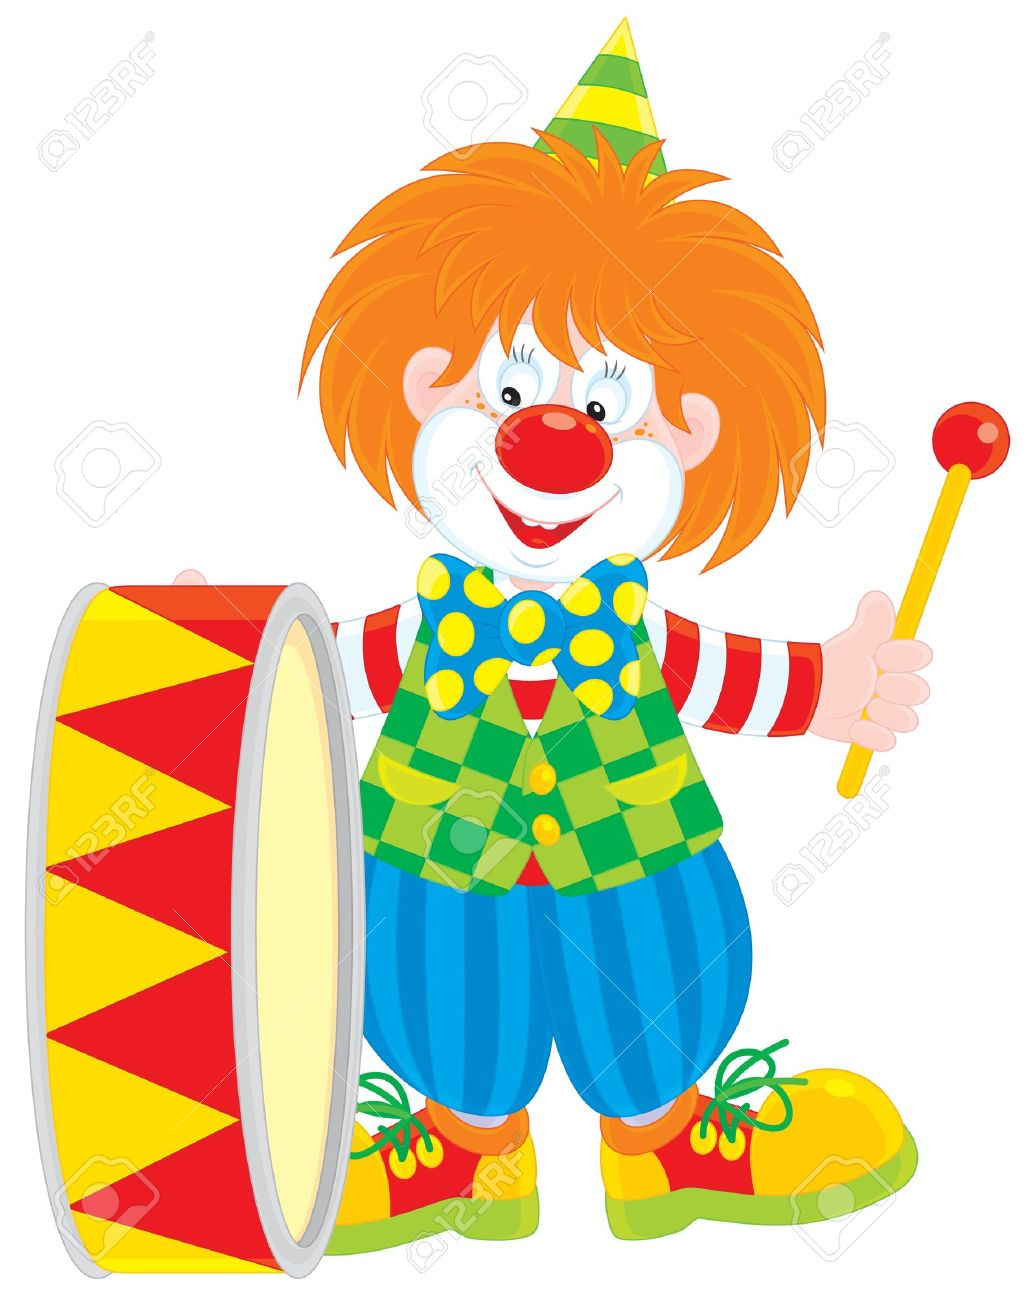 Circus Clown Drummer Royalty Free Cliparts, Vectors, And Stock.